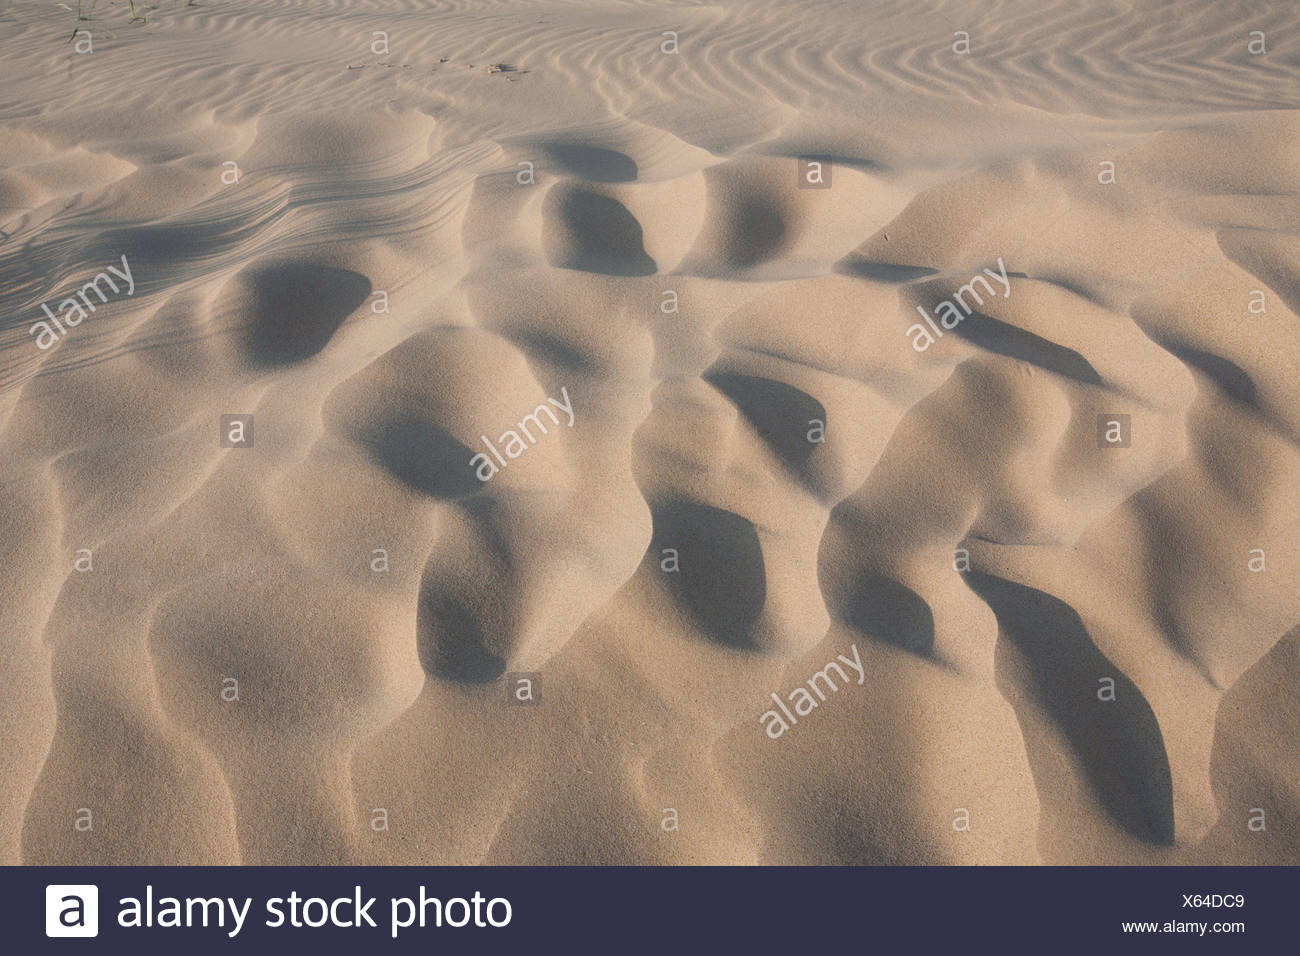 SAND; DUNES; PATTERN; RIPPLES; DETAIL; CLOSE UP - Stock Image